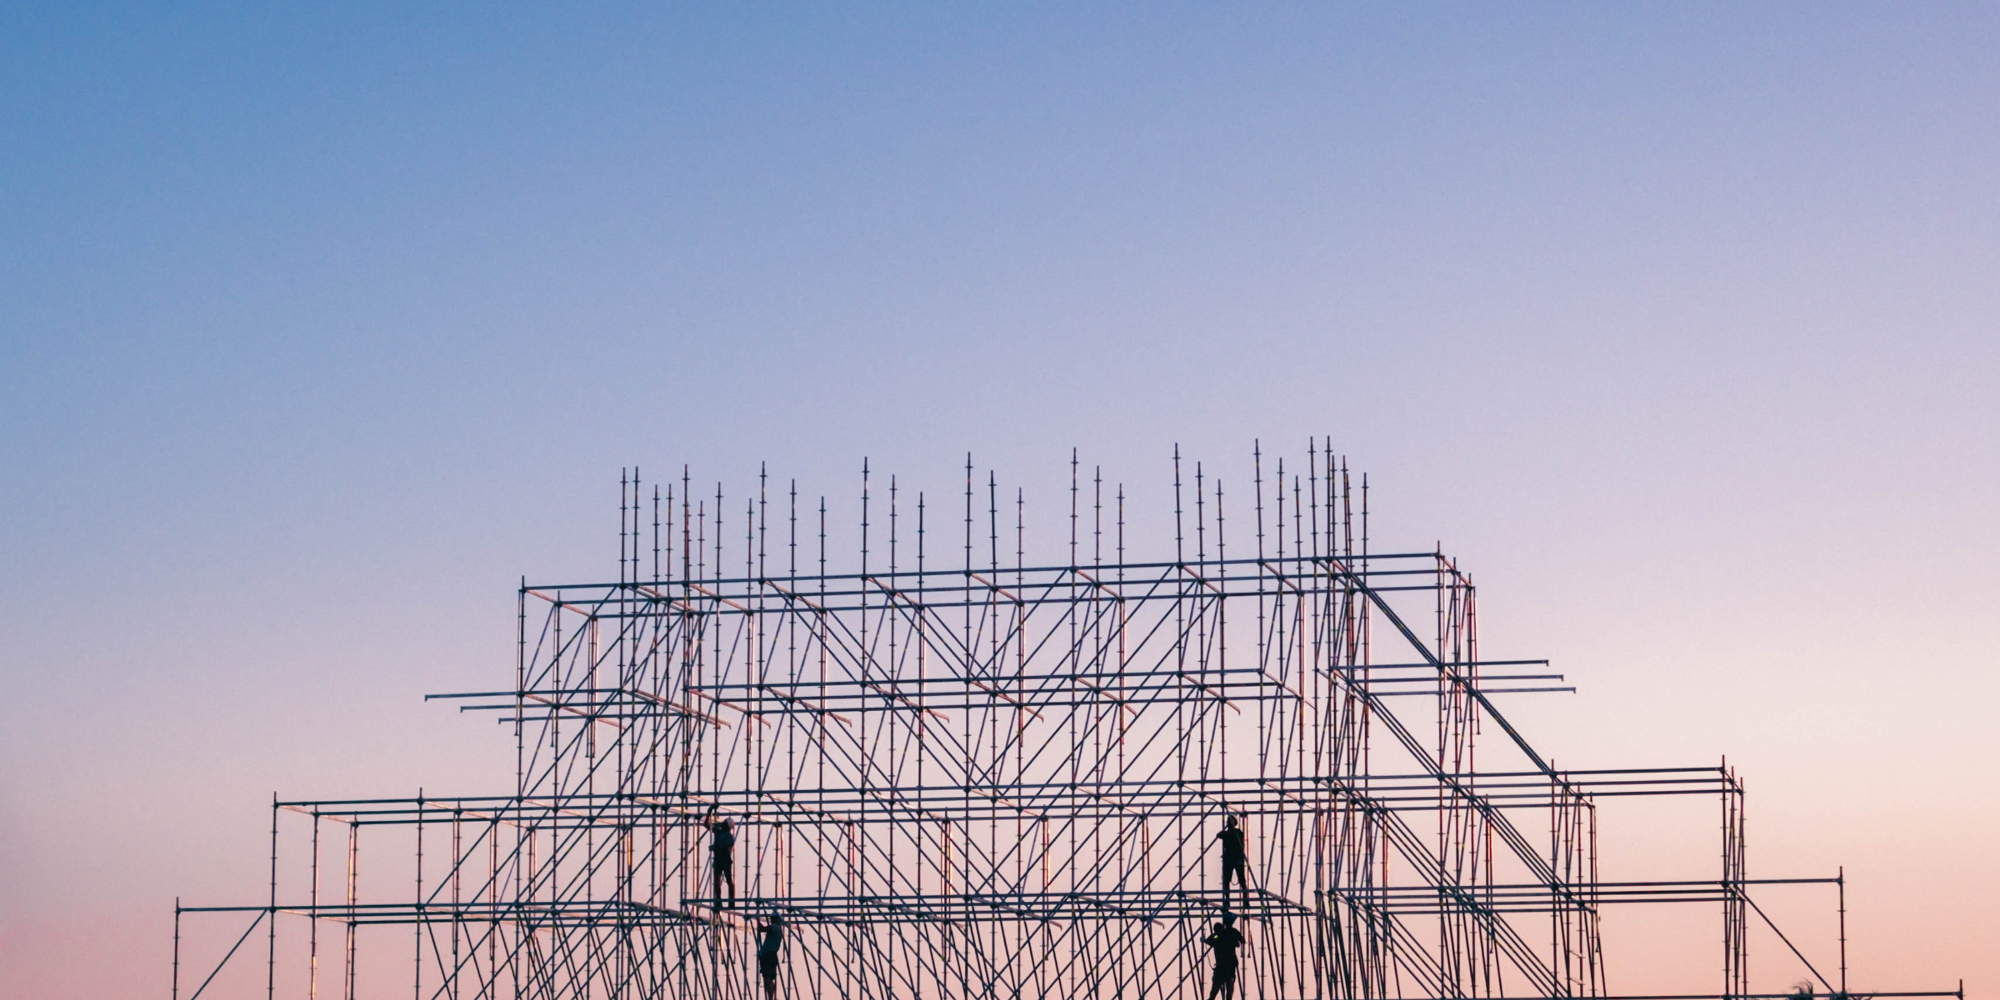 [Photo] Silhouette of four people on a steel-frame building construction.